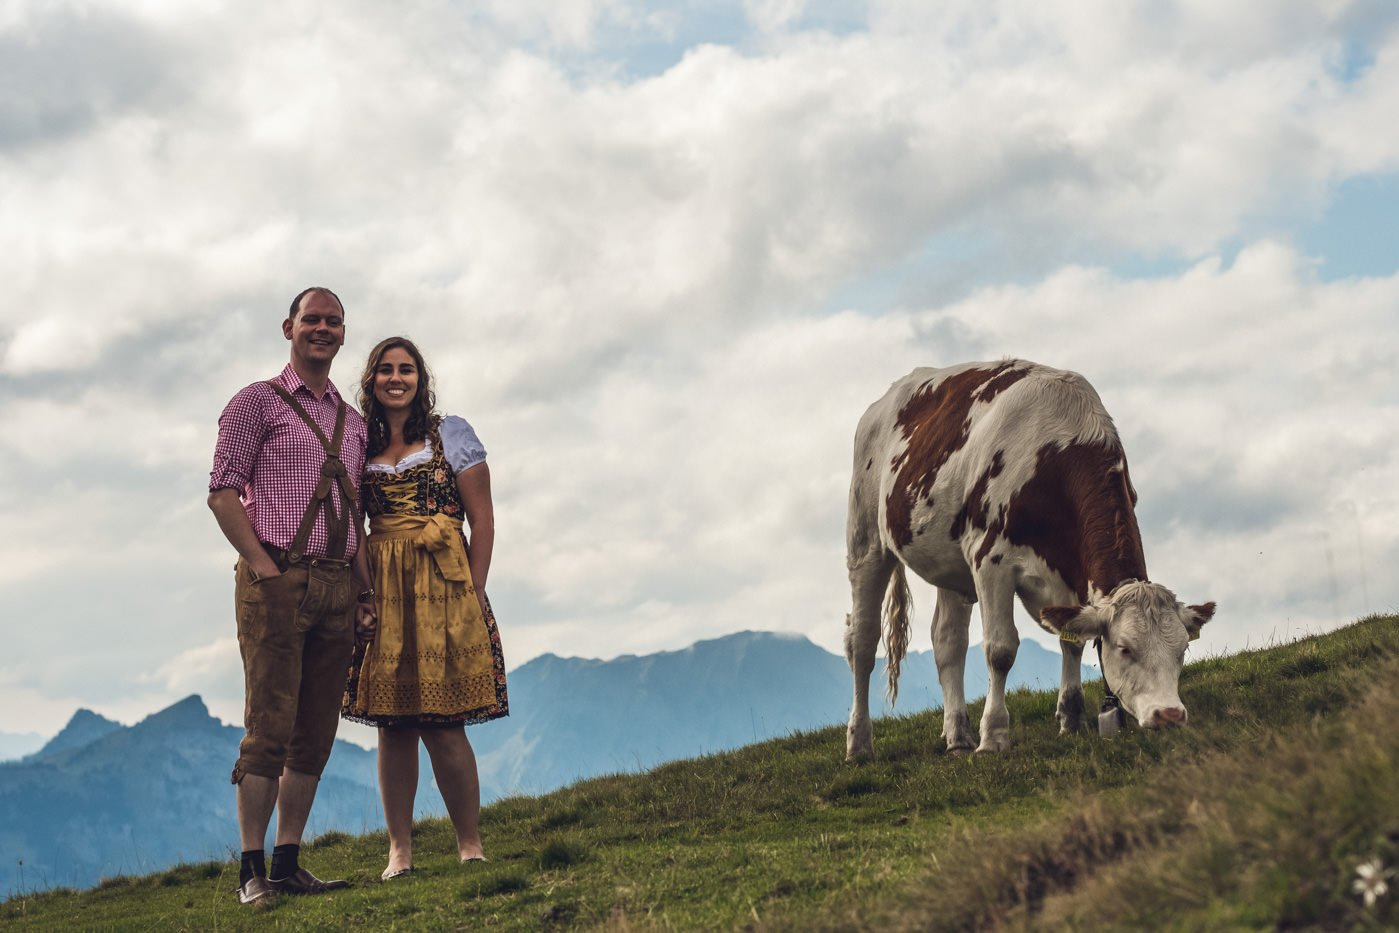 Couple in traditional Swiss dress standing next to cow